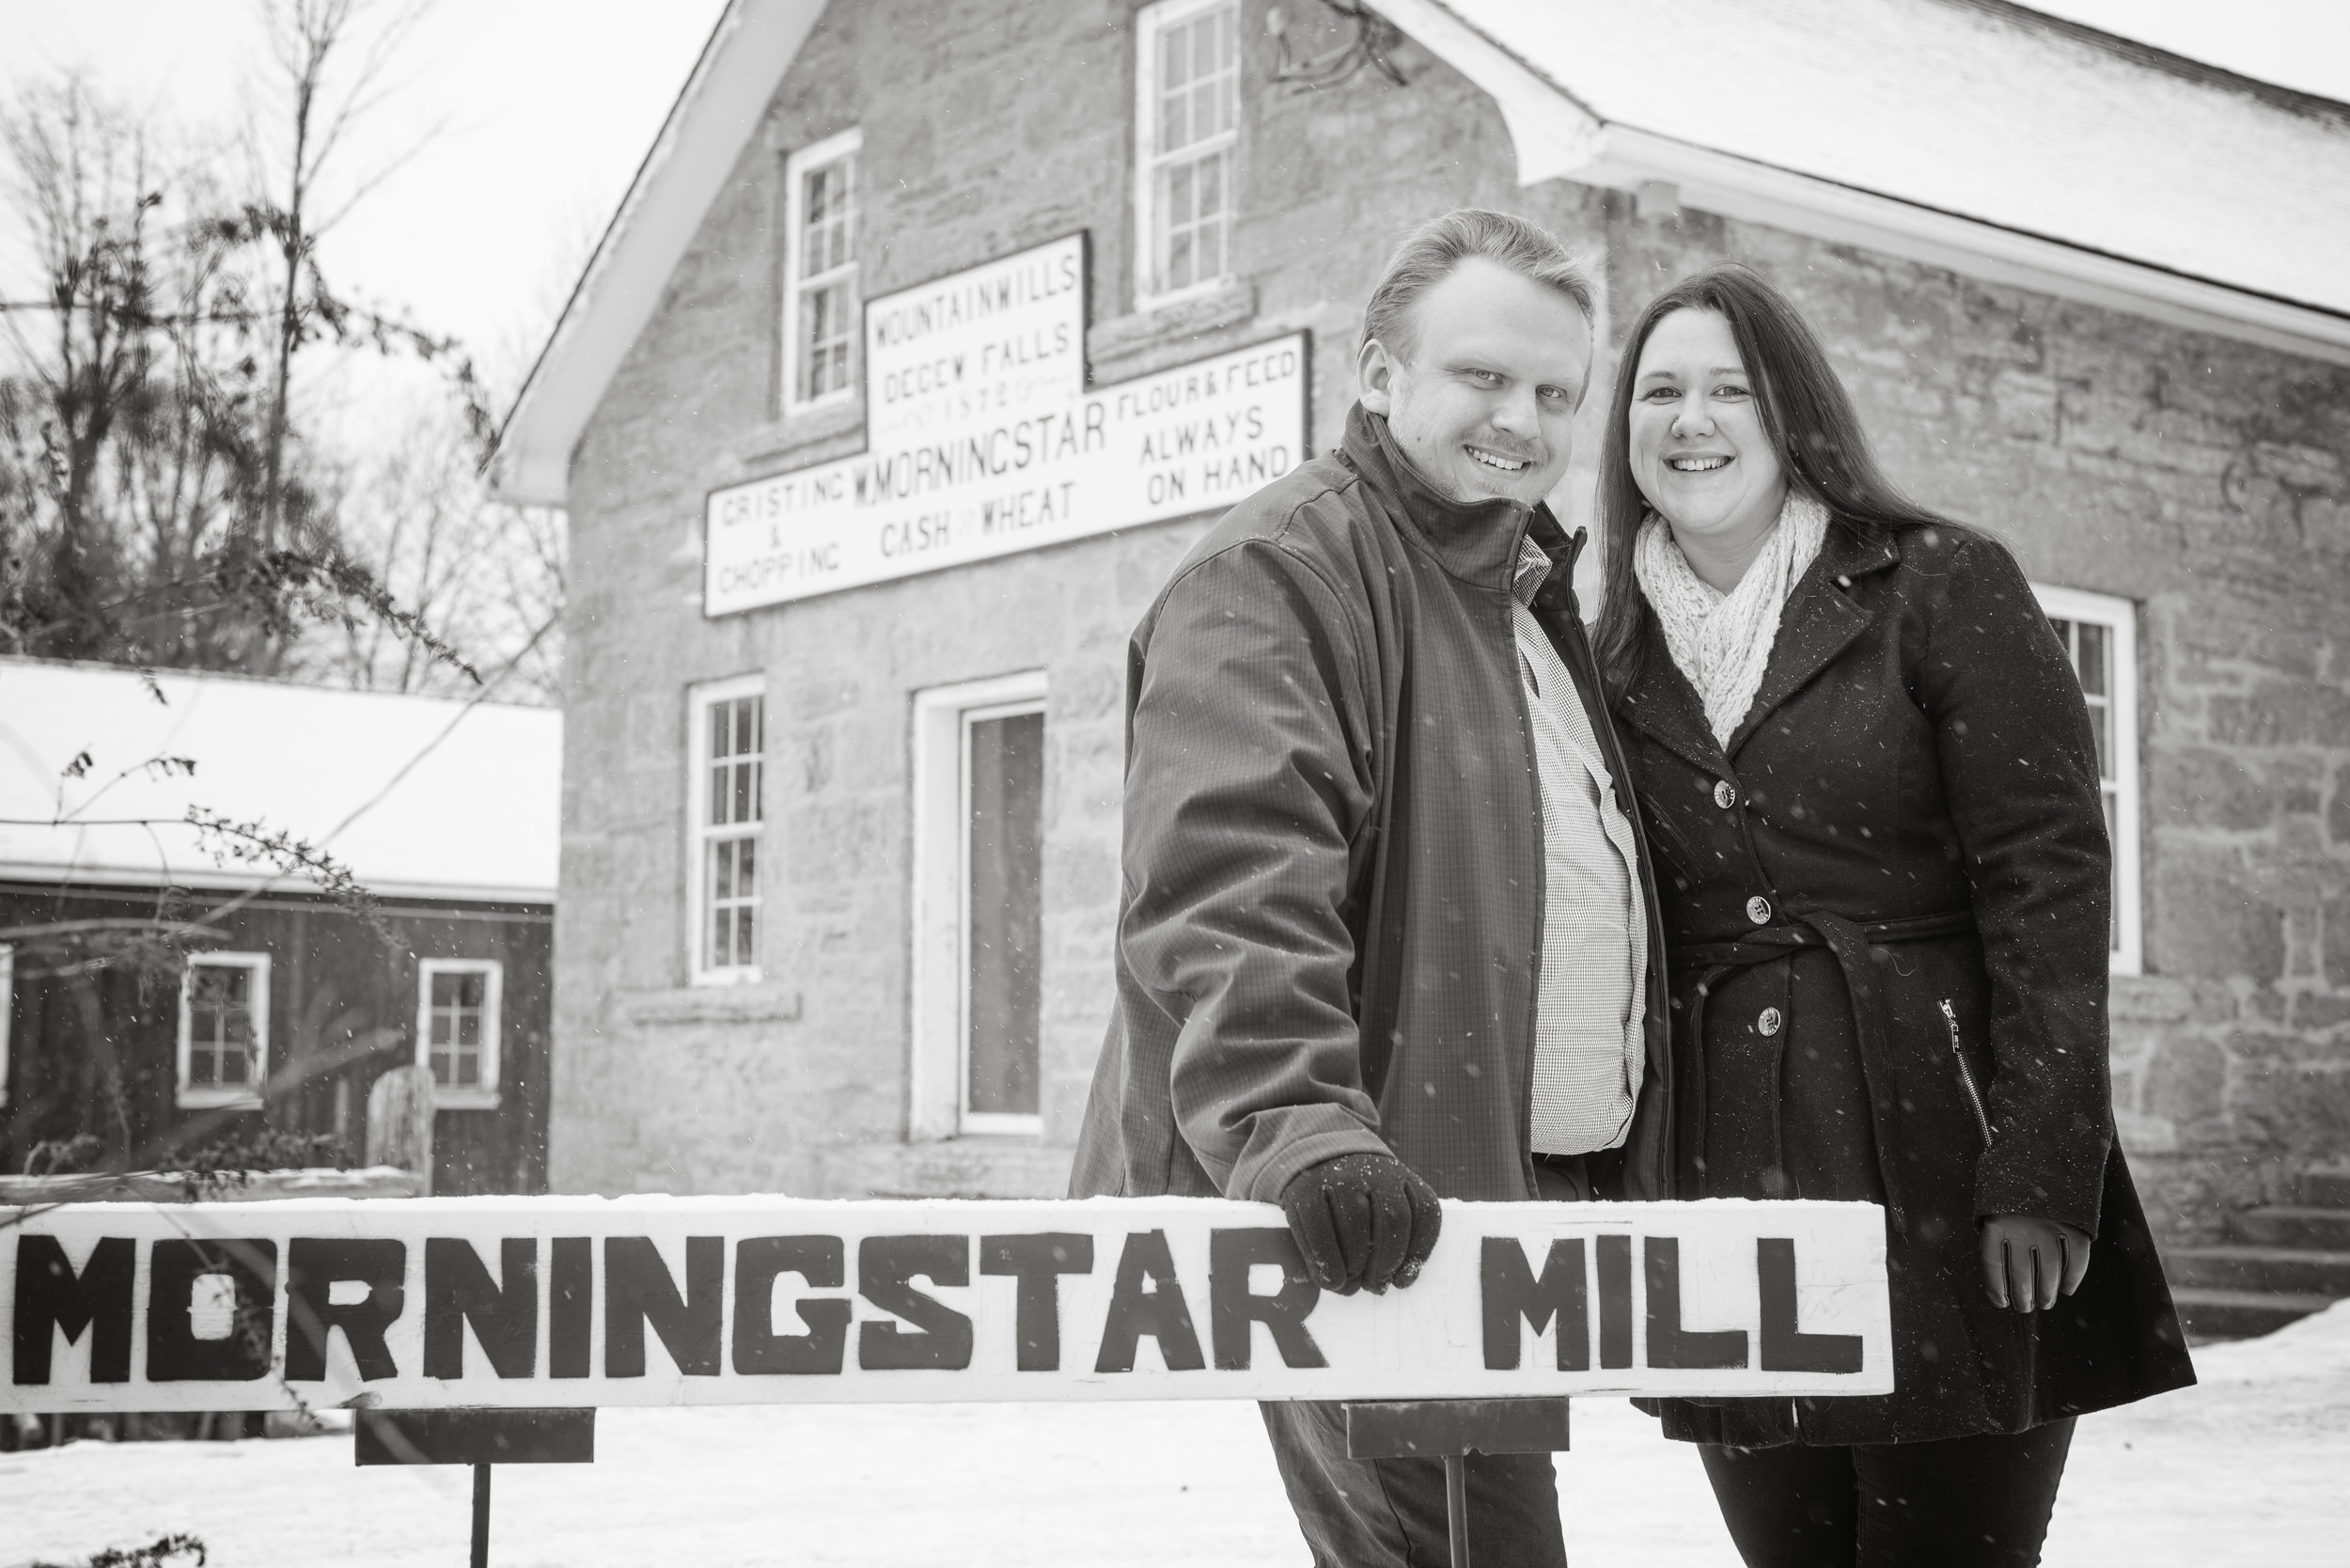 We bought the Mill. The bad sequel to 'We bought a zoo'